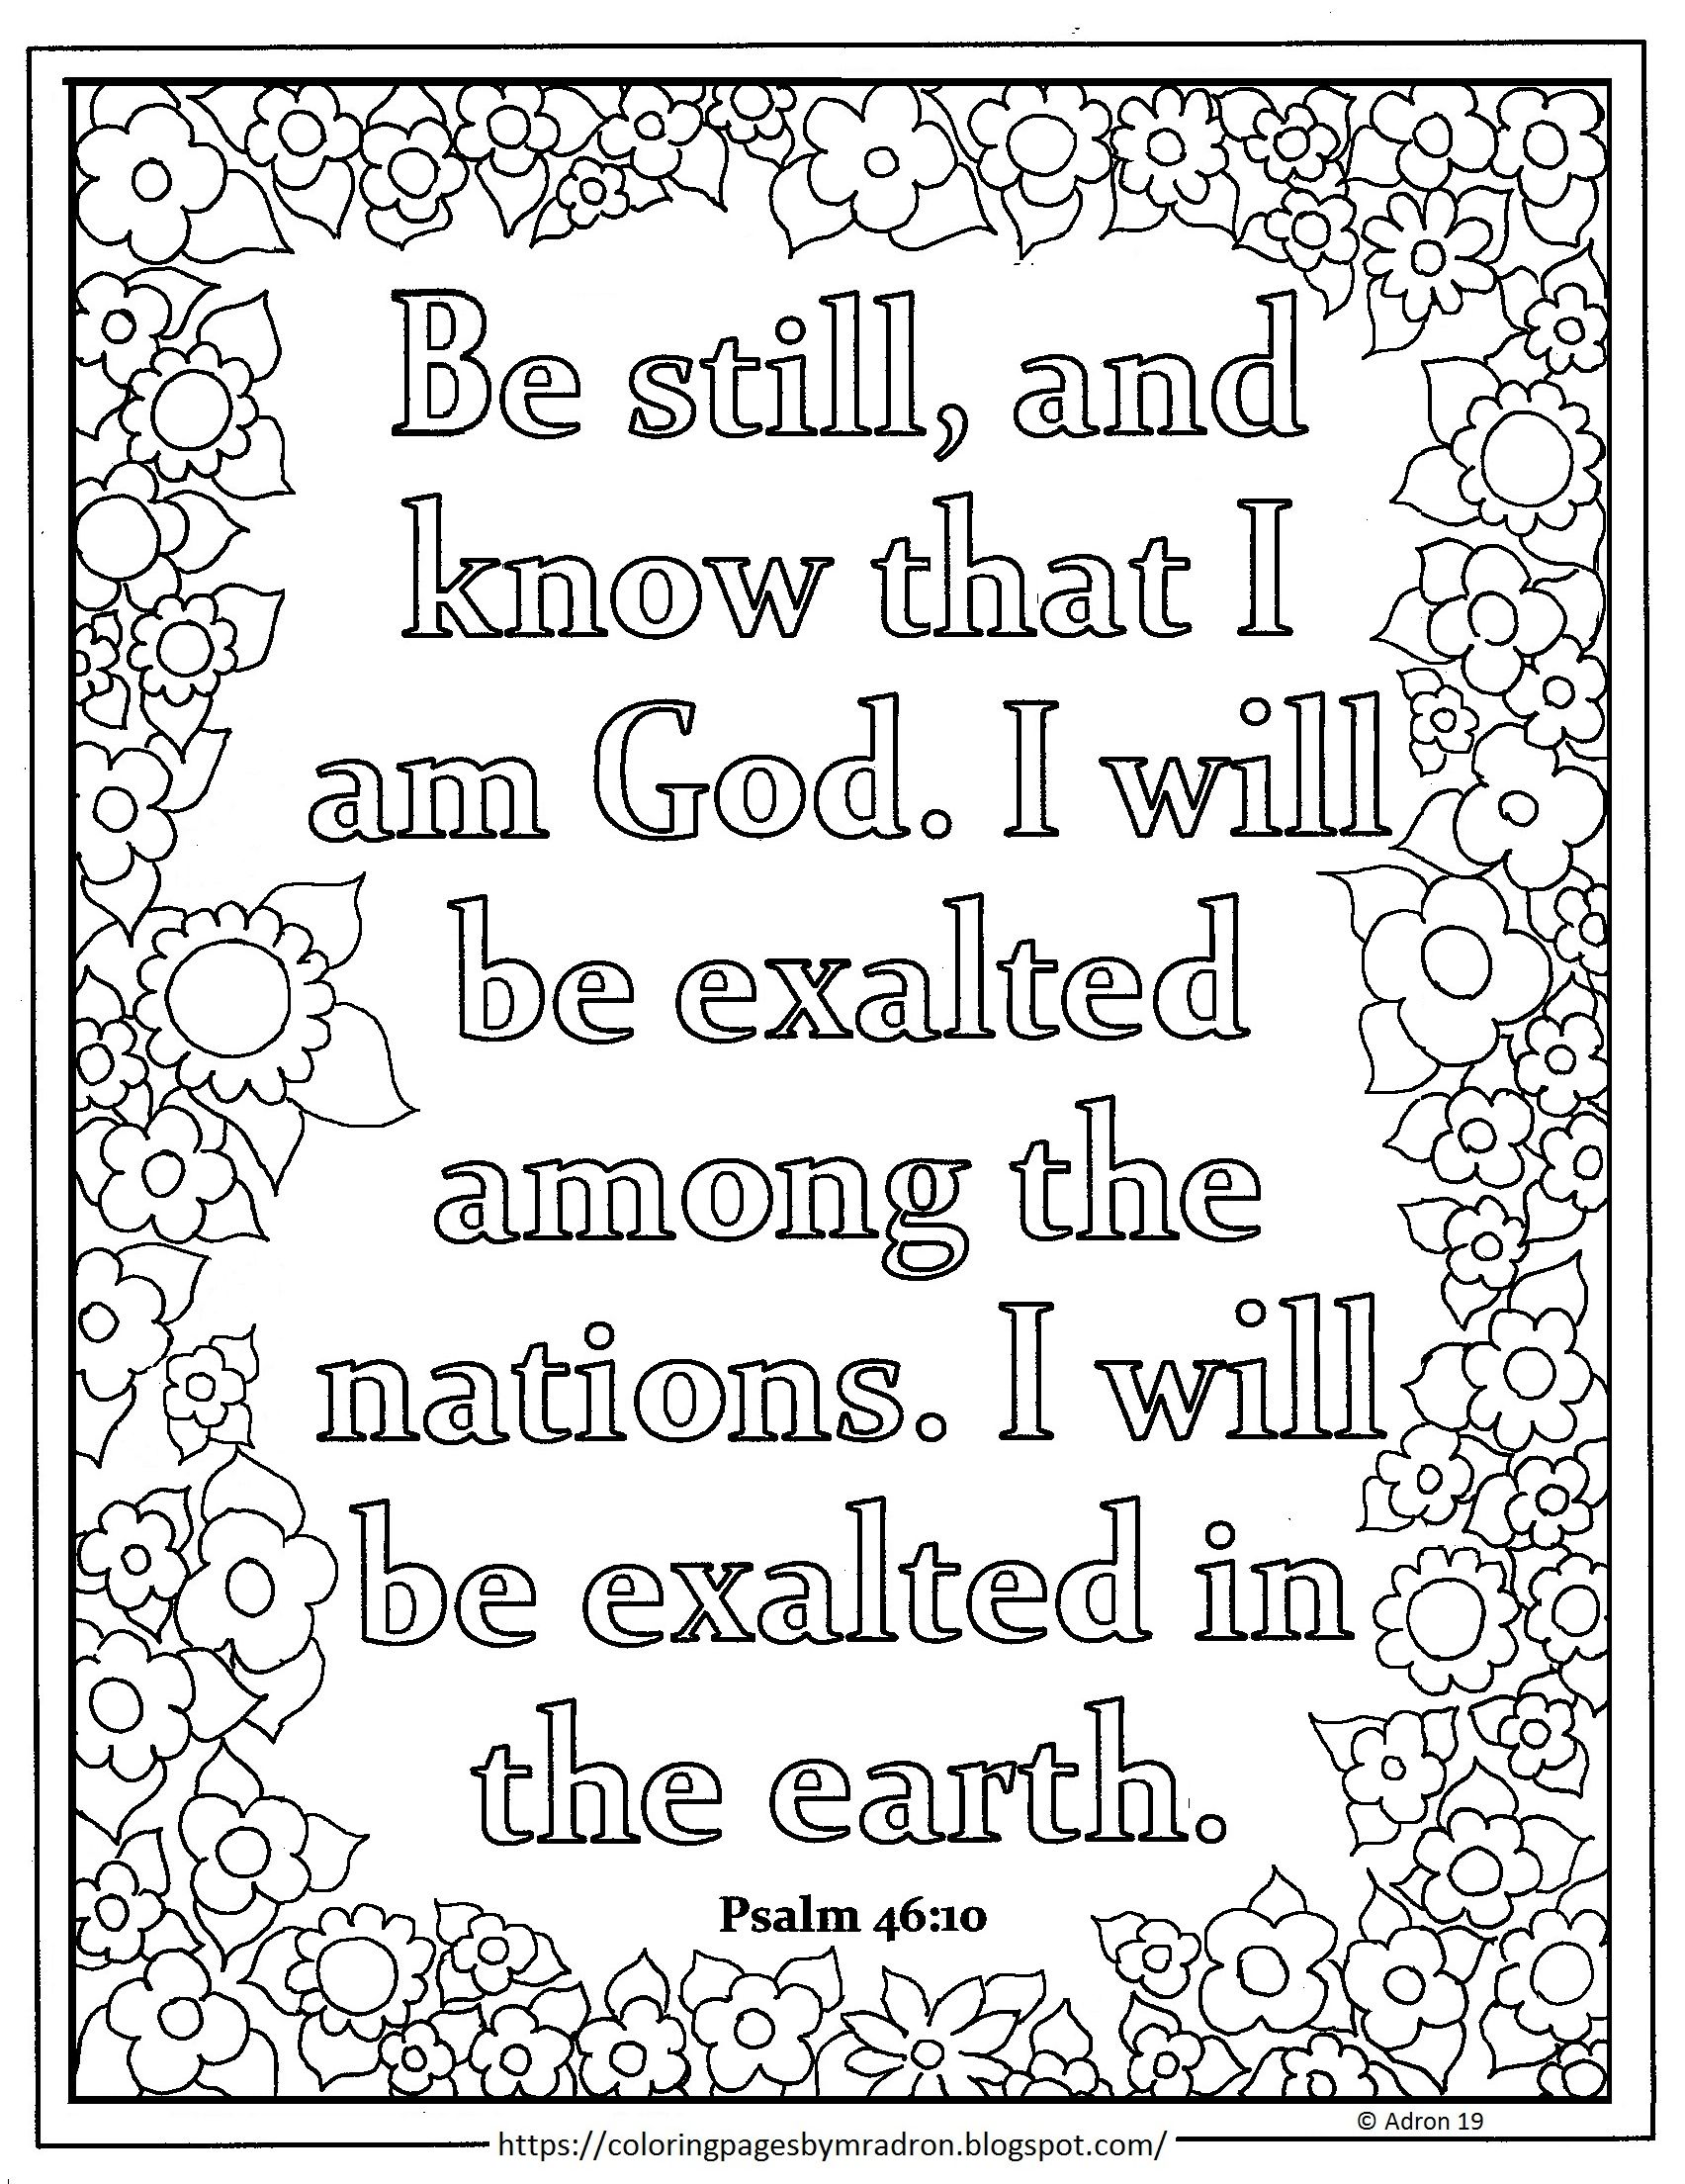 Free Psalm 46 10 Print And Color Page For Lent Day 26 Psalms